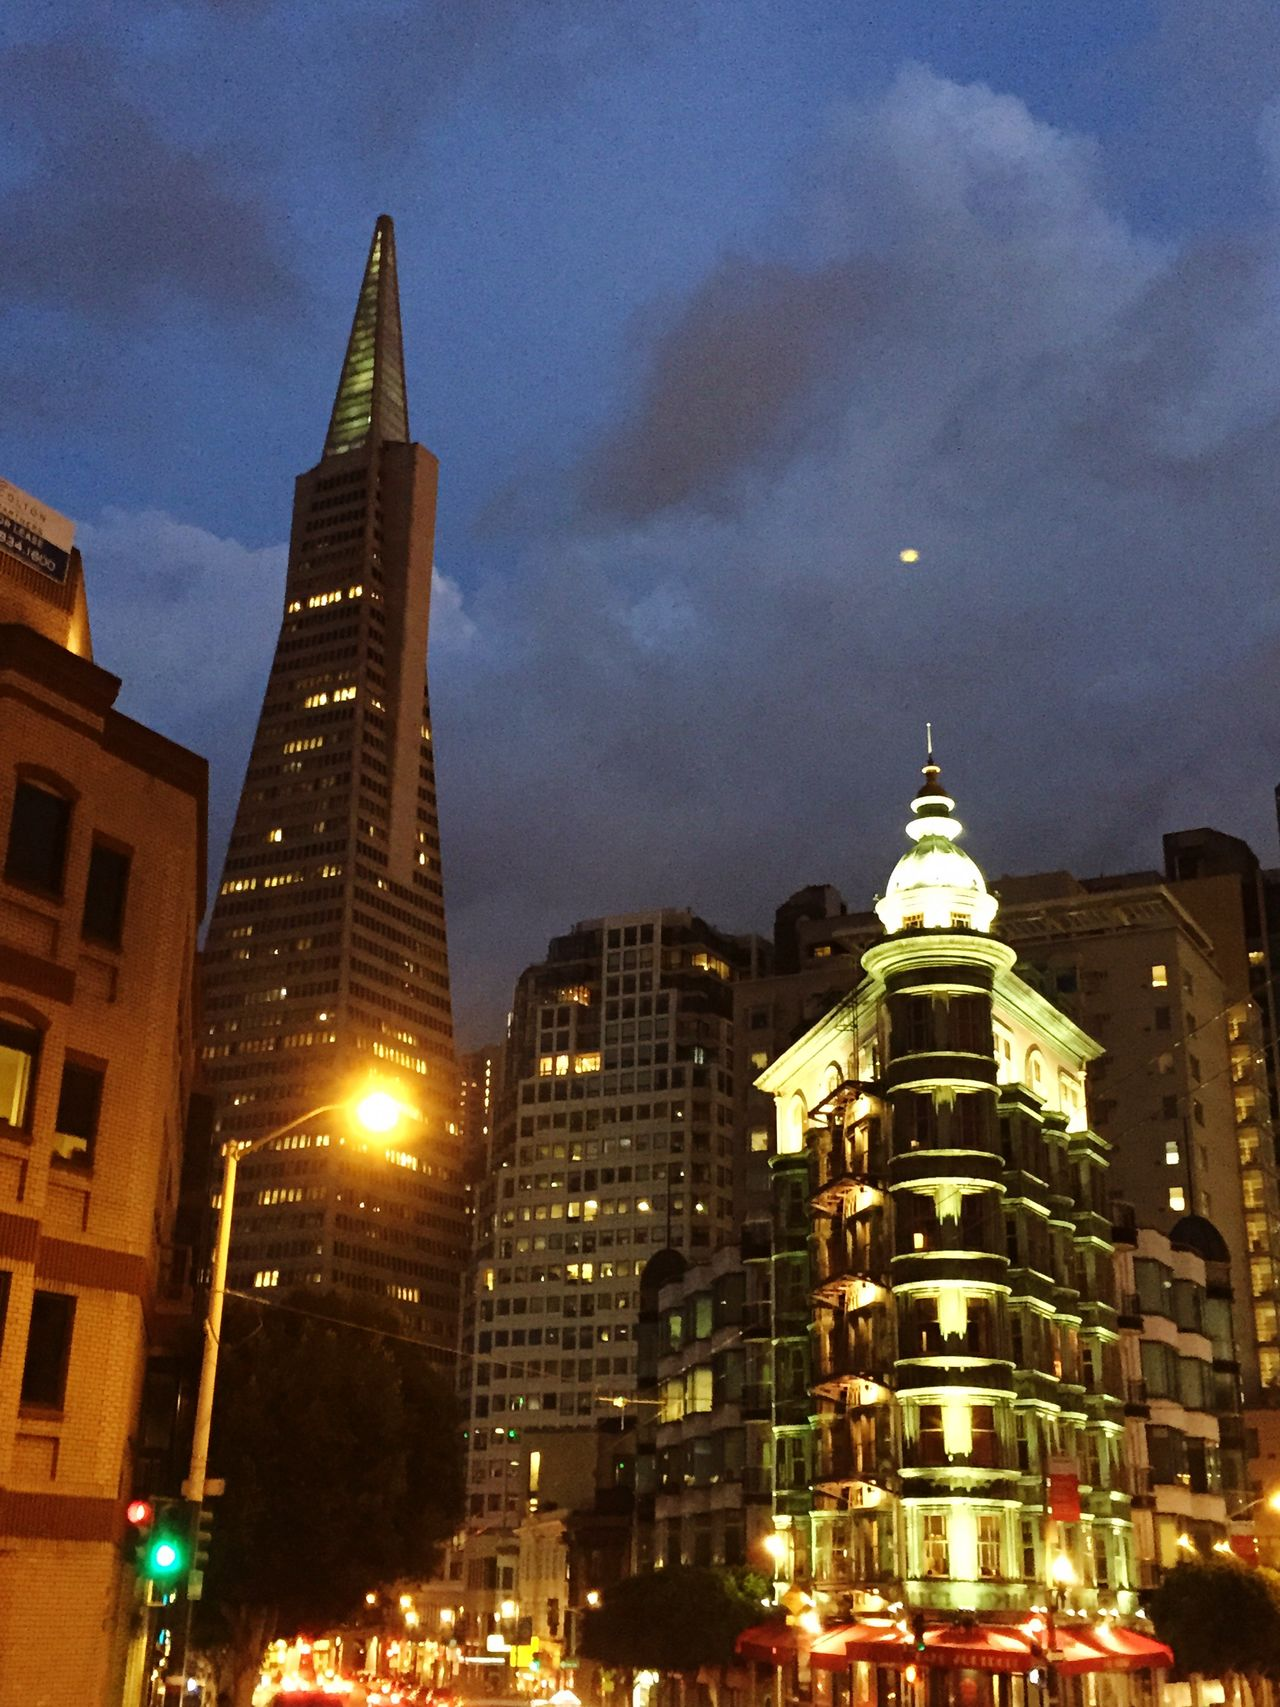 San Francisco at Night . City Night Lights Urban Landscape Eye4photography  Nightphotography Cityscapes